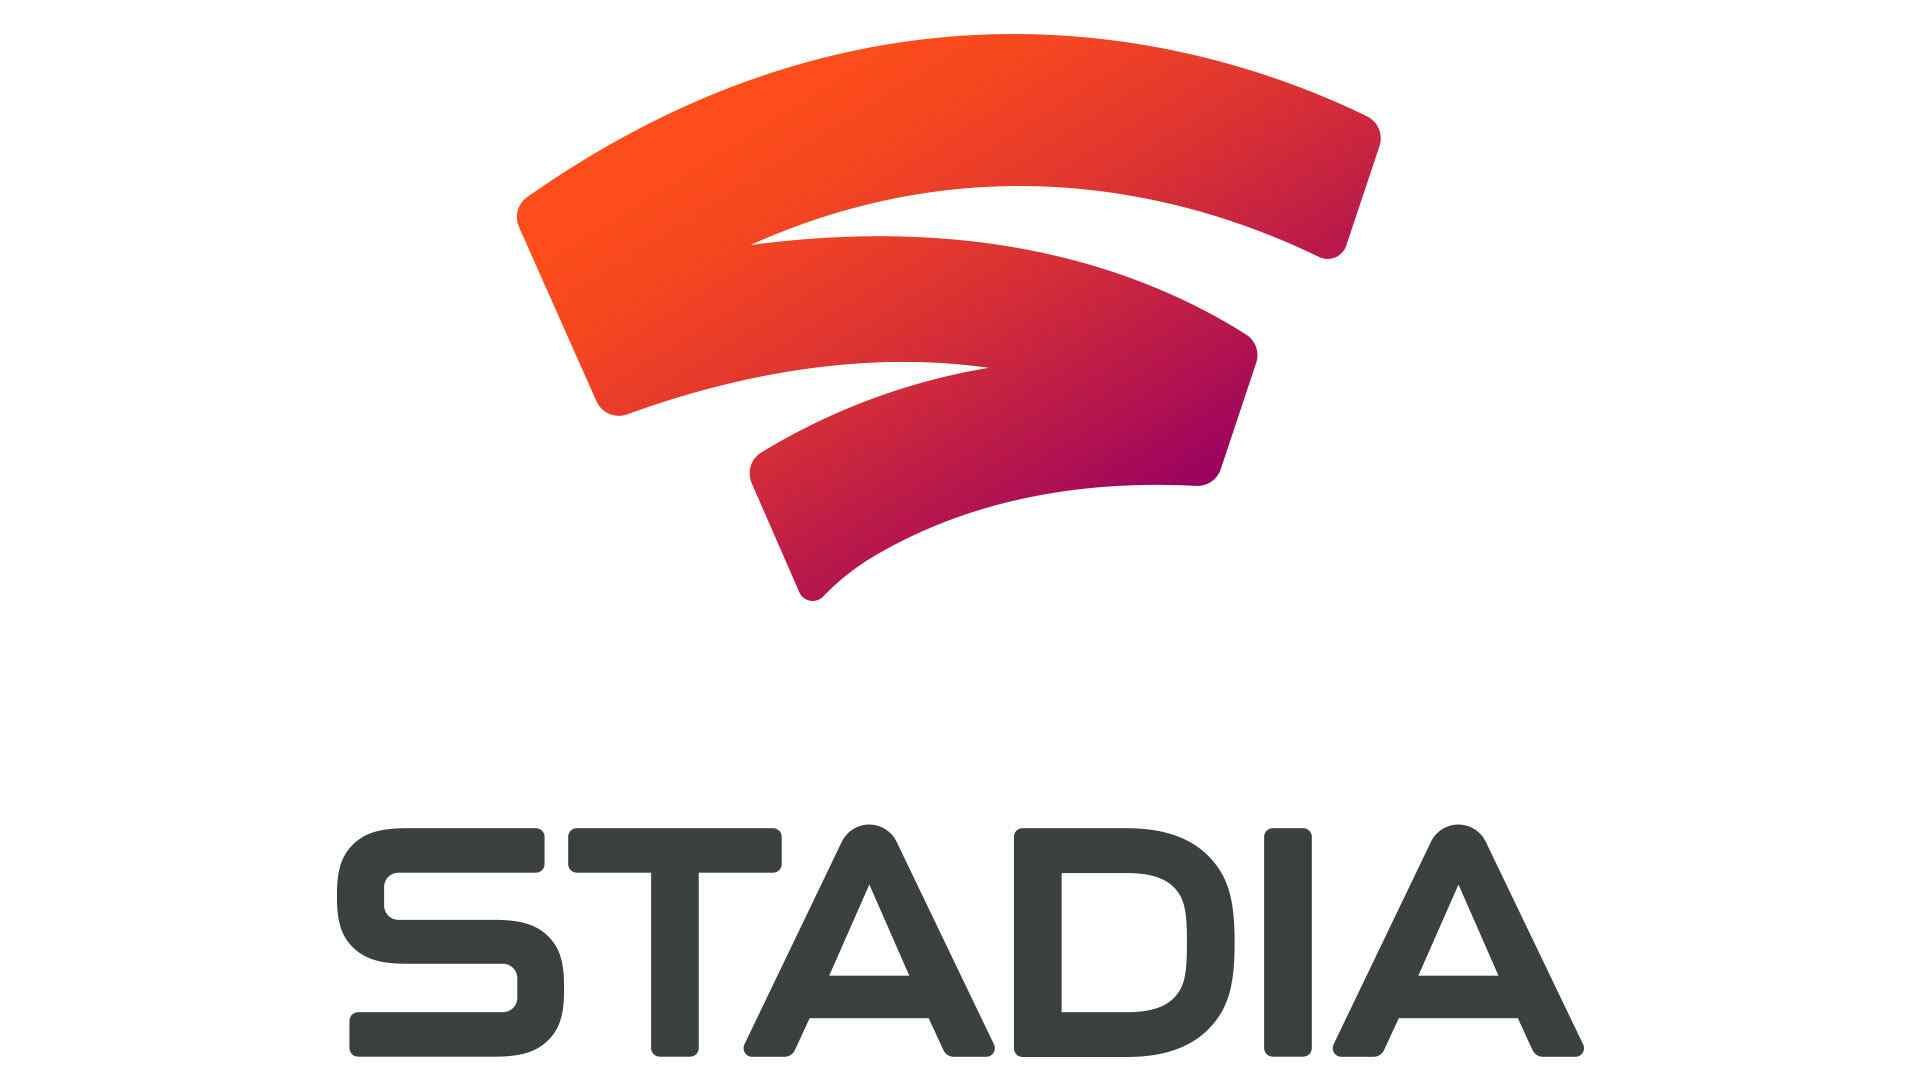 Google Stadia new games